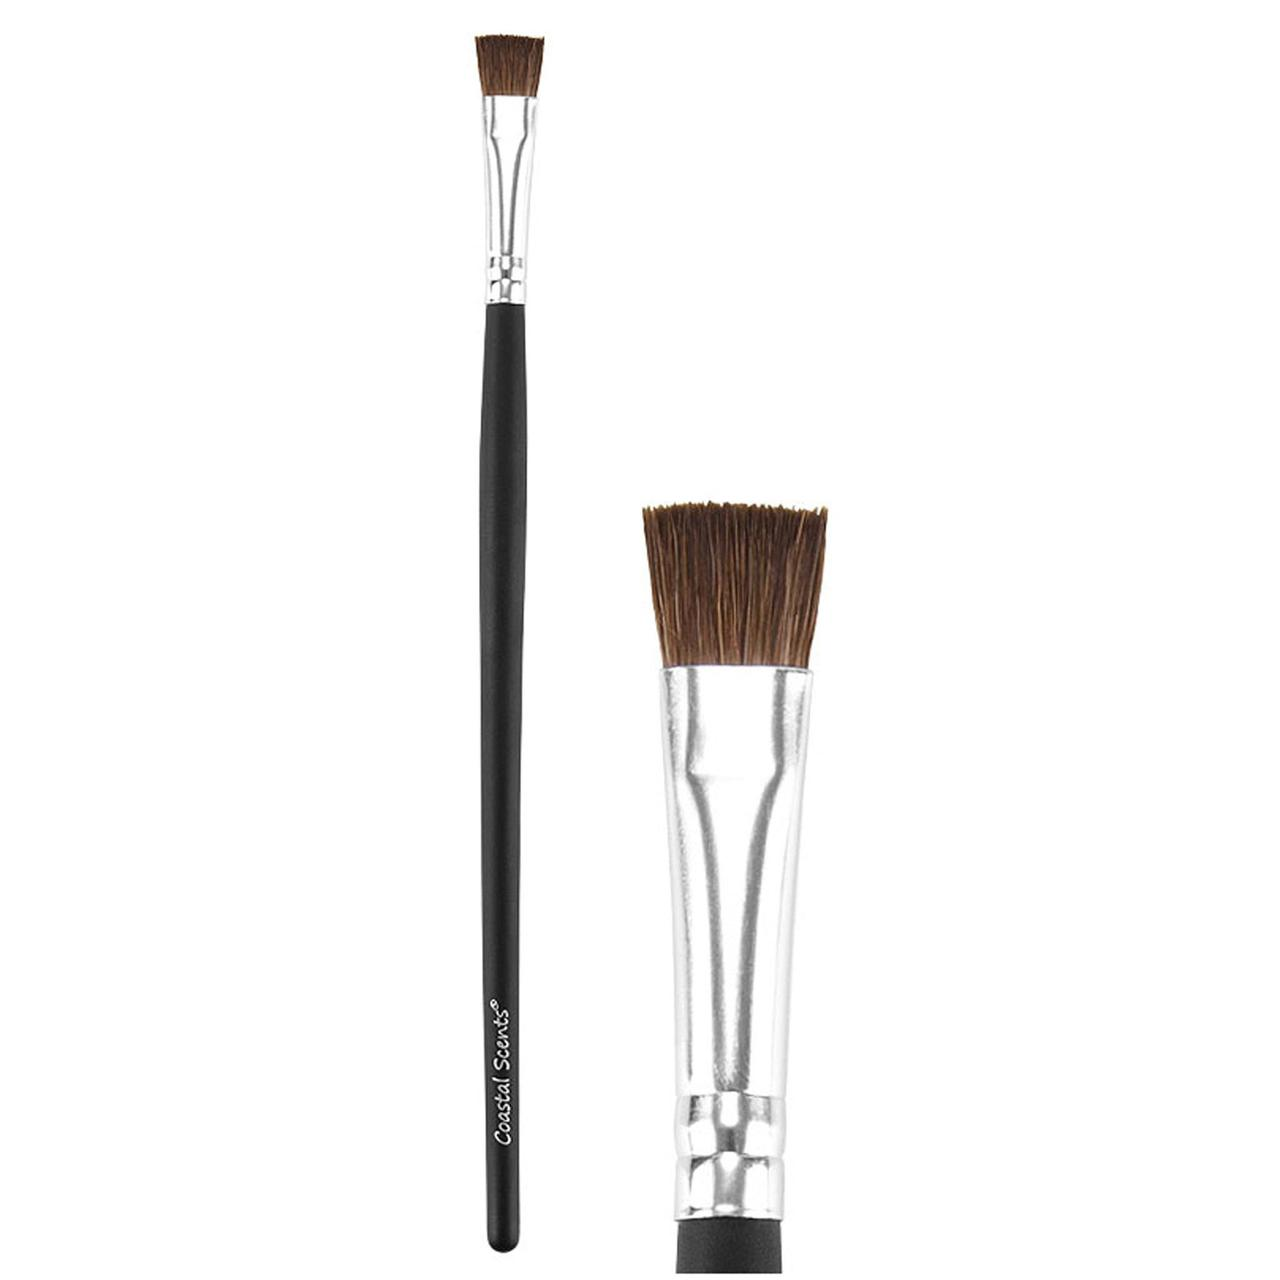 Кисть для теней Coastal Scents Classic Flat Liner Brush Natural